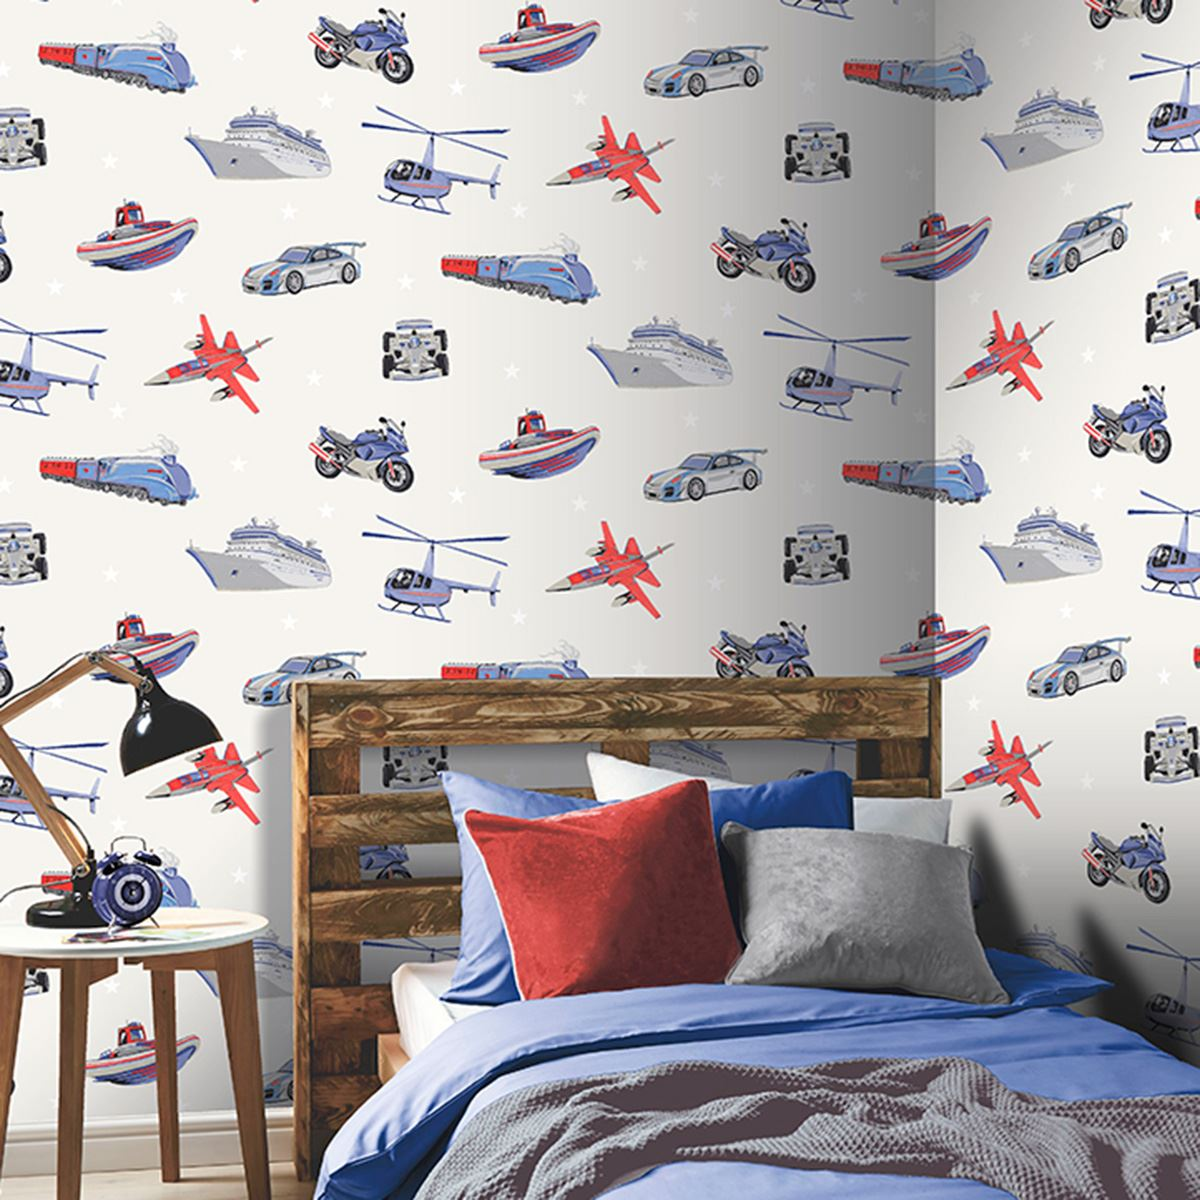 wallpaper borders for bedrooms transport and vehicles themed wallpaper amp borders bedroom 17767